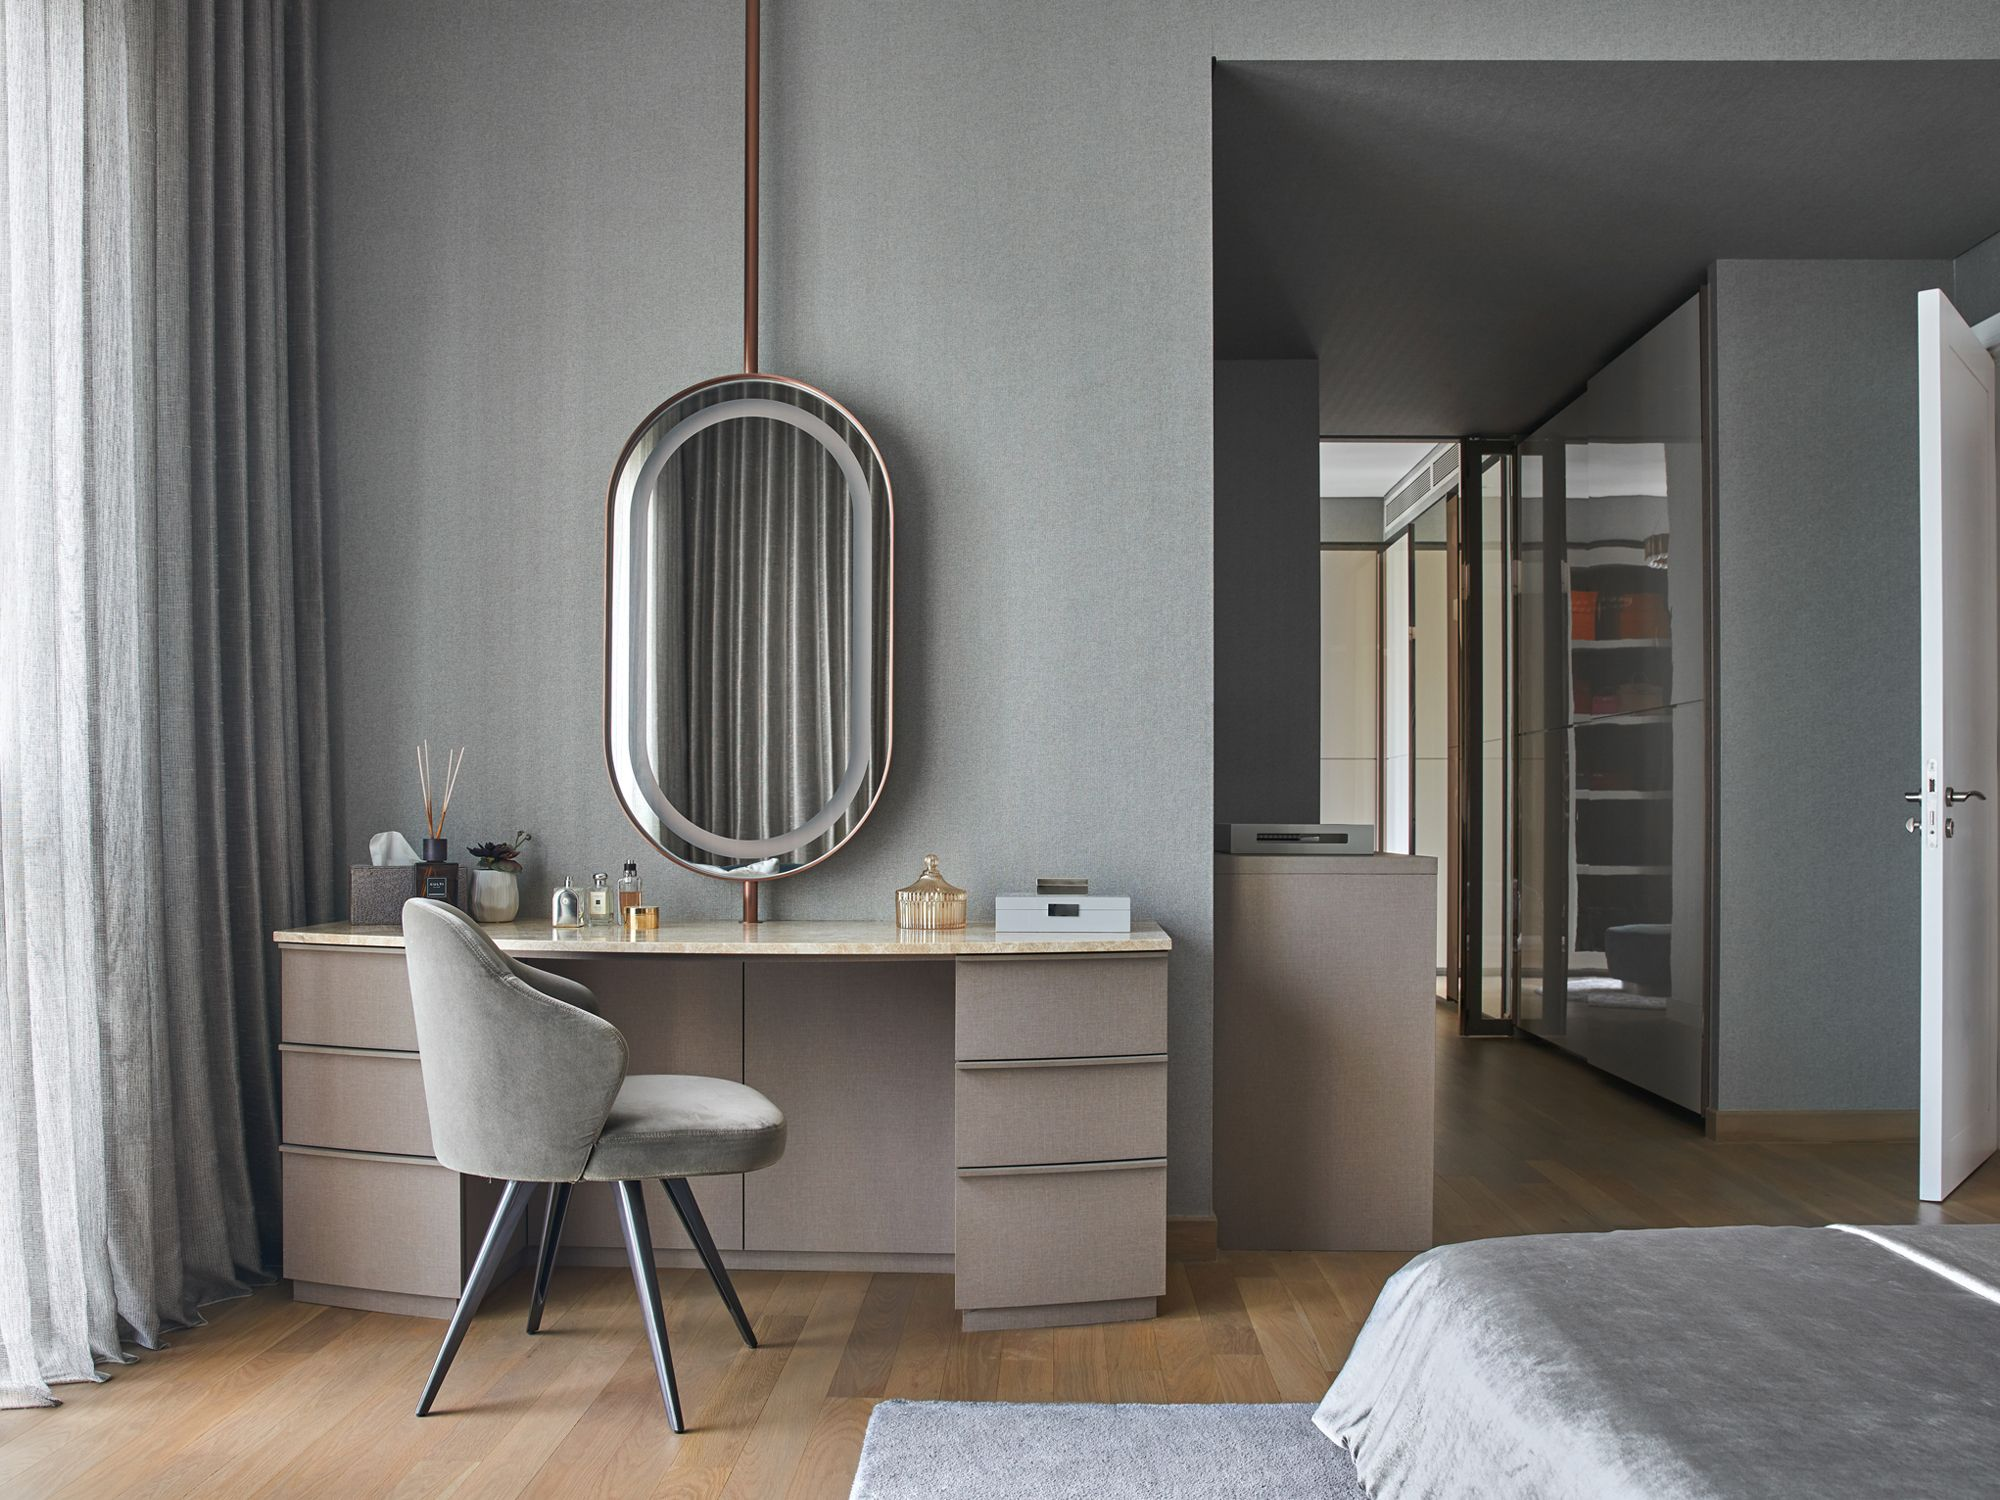 The master bedroom extends the visual language via an identical palette and a mirror similar to that in the dressing area